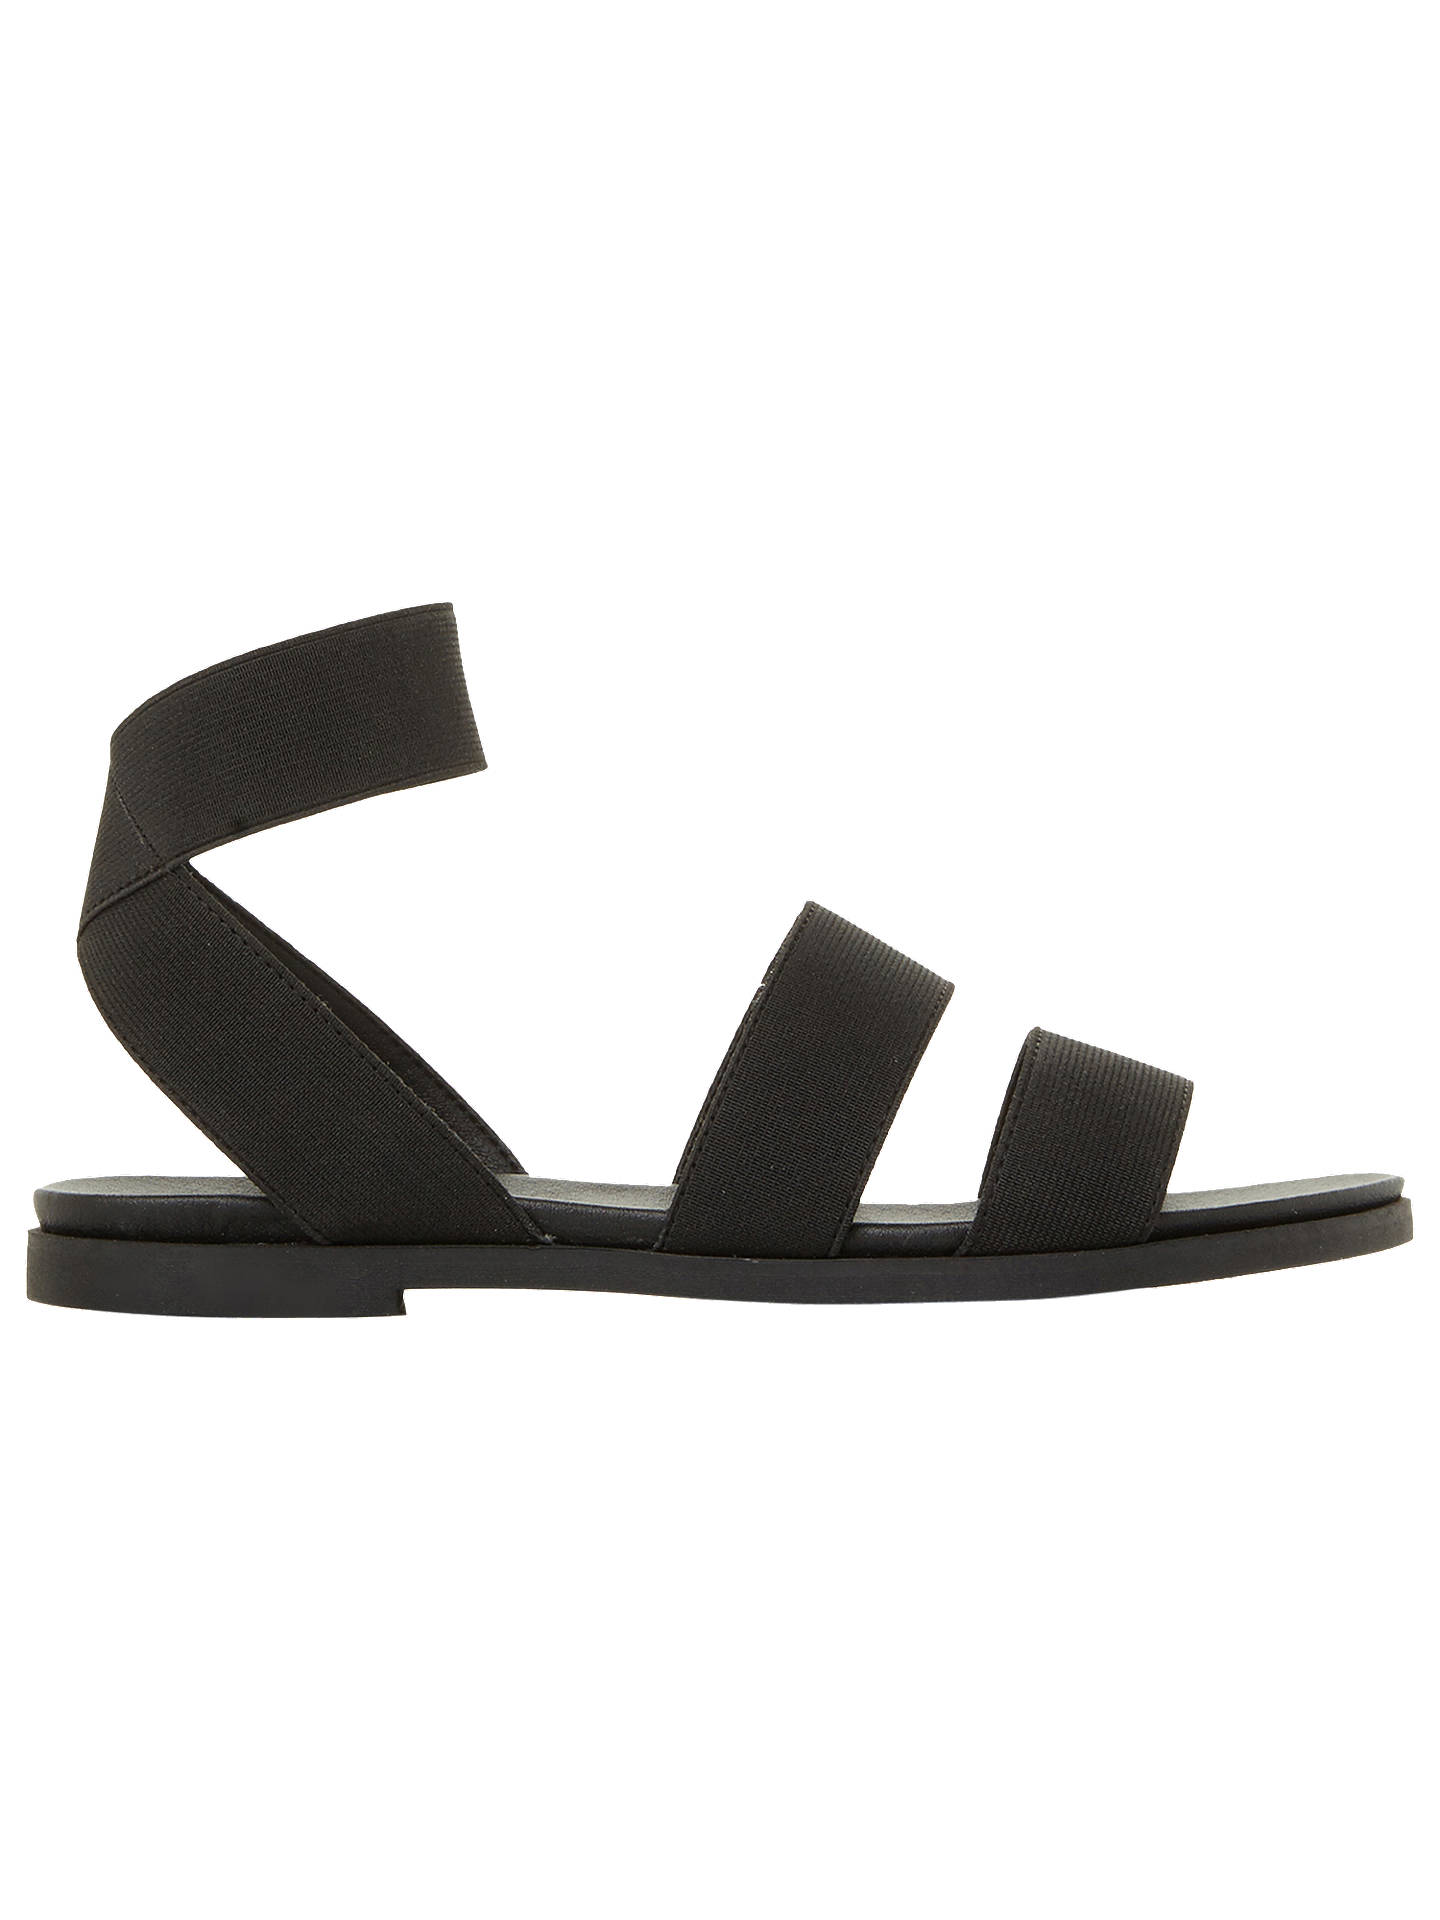 Buy Steve Madden Delicious Strappy Flat Sandals, Black, 5 Online at johnlewis.com